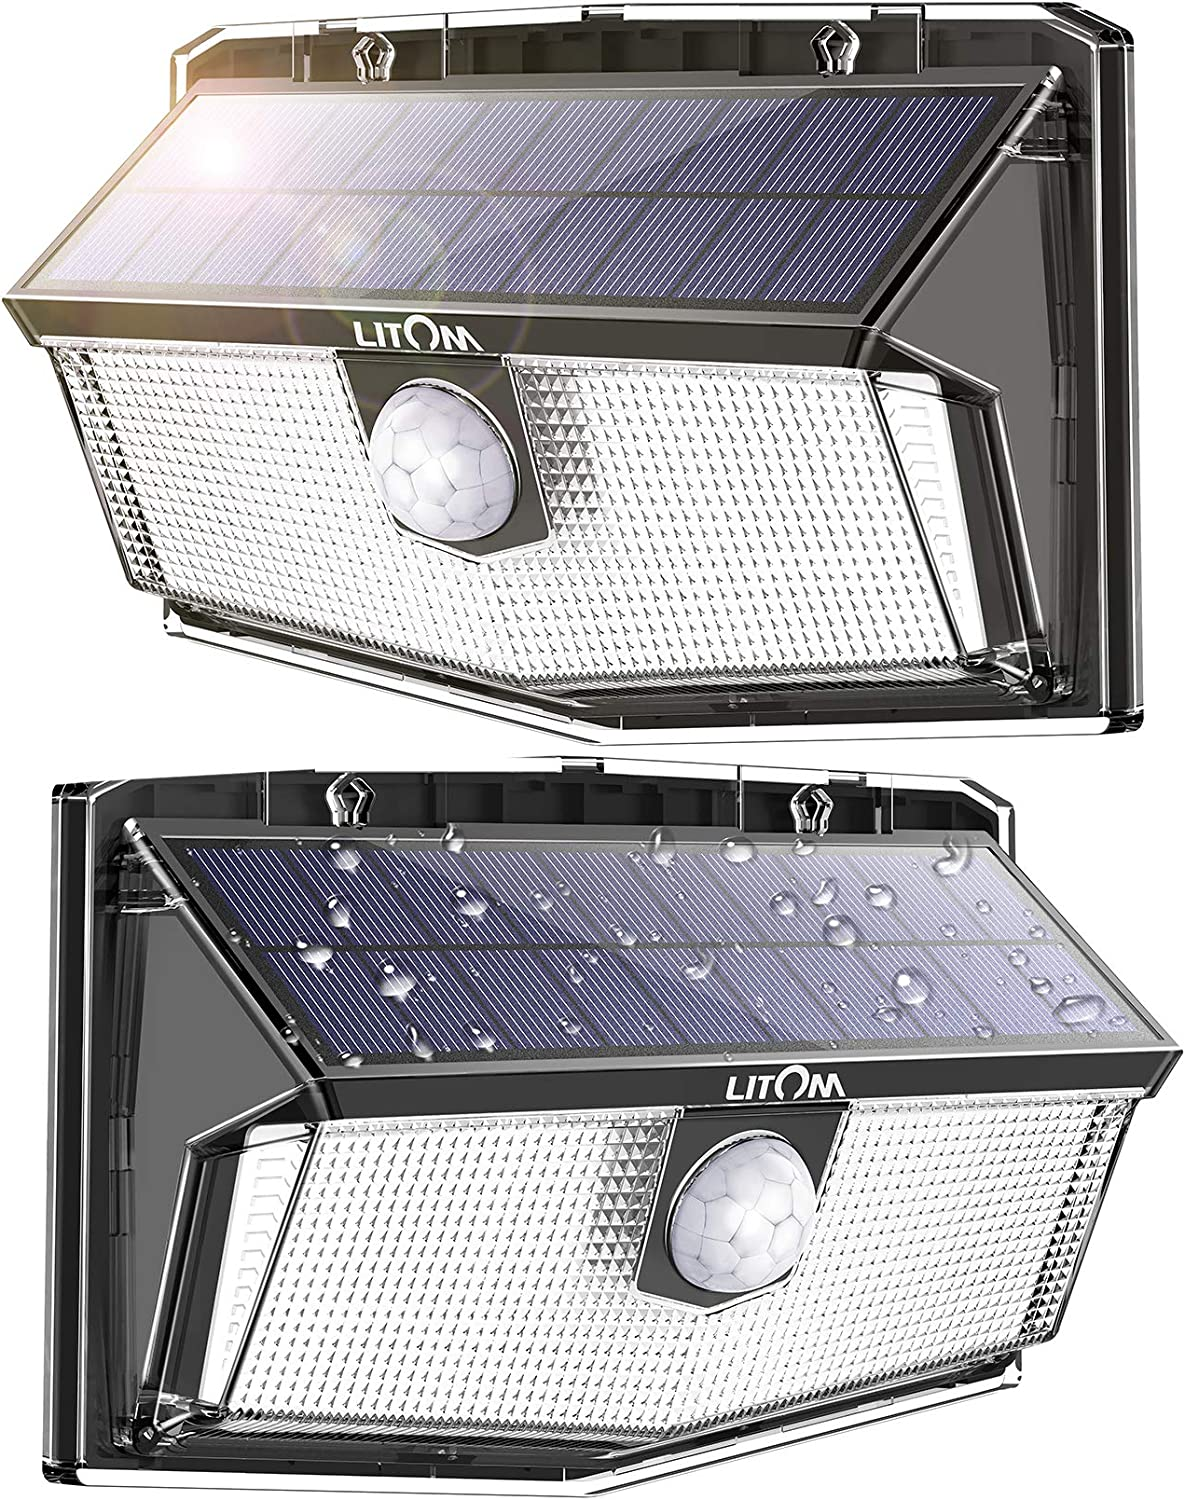 LITOM 300 LED Solar Motion Sensor Lights Outdoor, IP67 Waterproof Solar Powered Security Lights Wireless Solar Wall Lights with 3 Modes for Garden Patio Yard Deck Garage Fence Pool - Cold White 2 Pack